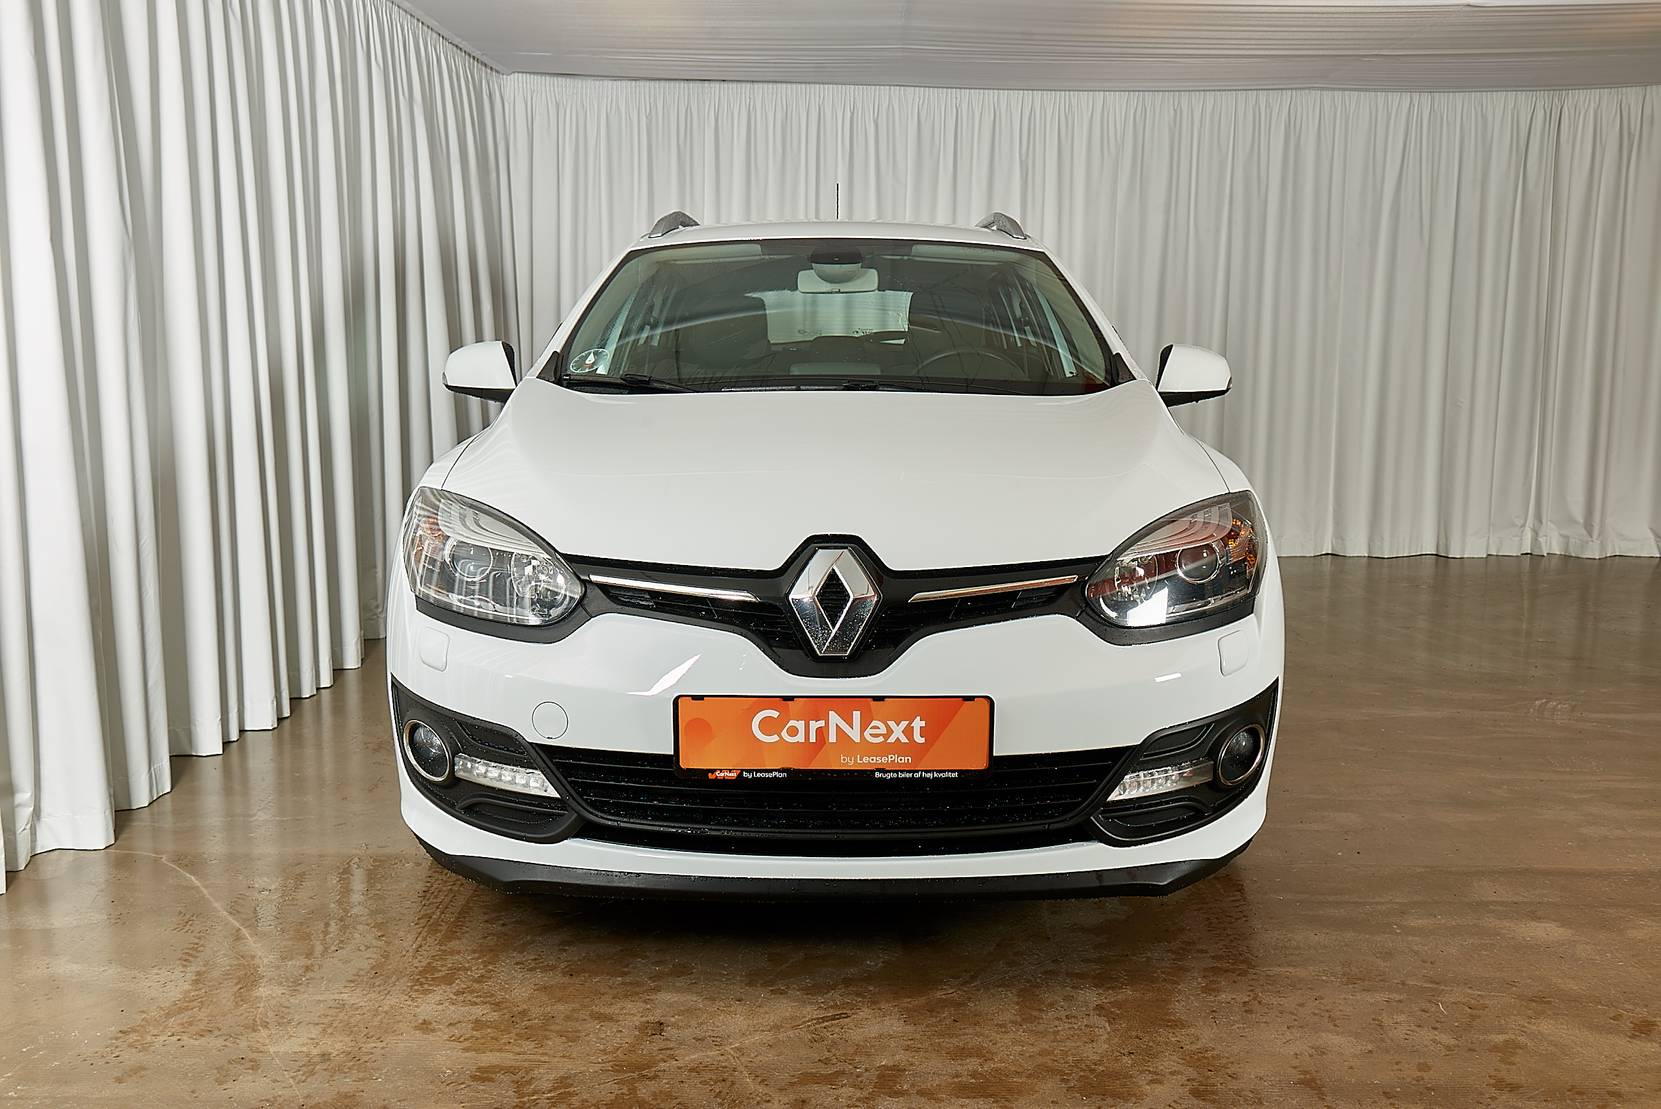 Renault Mégane III 1,5 dCi 110 Limited Edition ST ESM 5d detail2